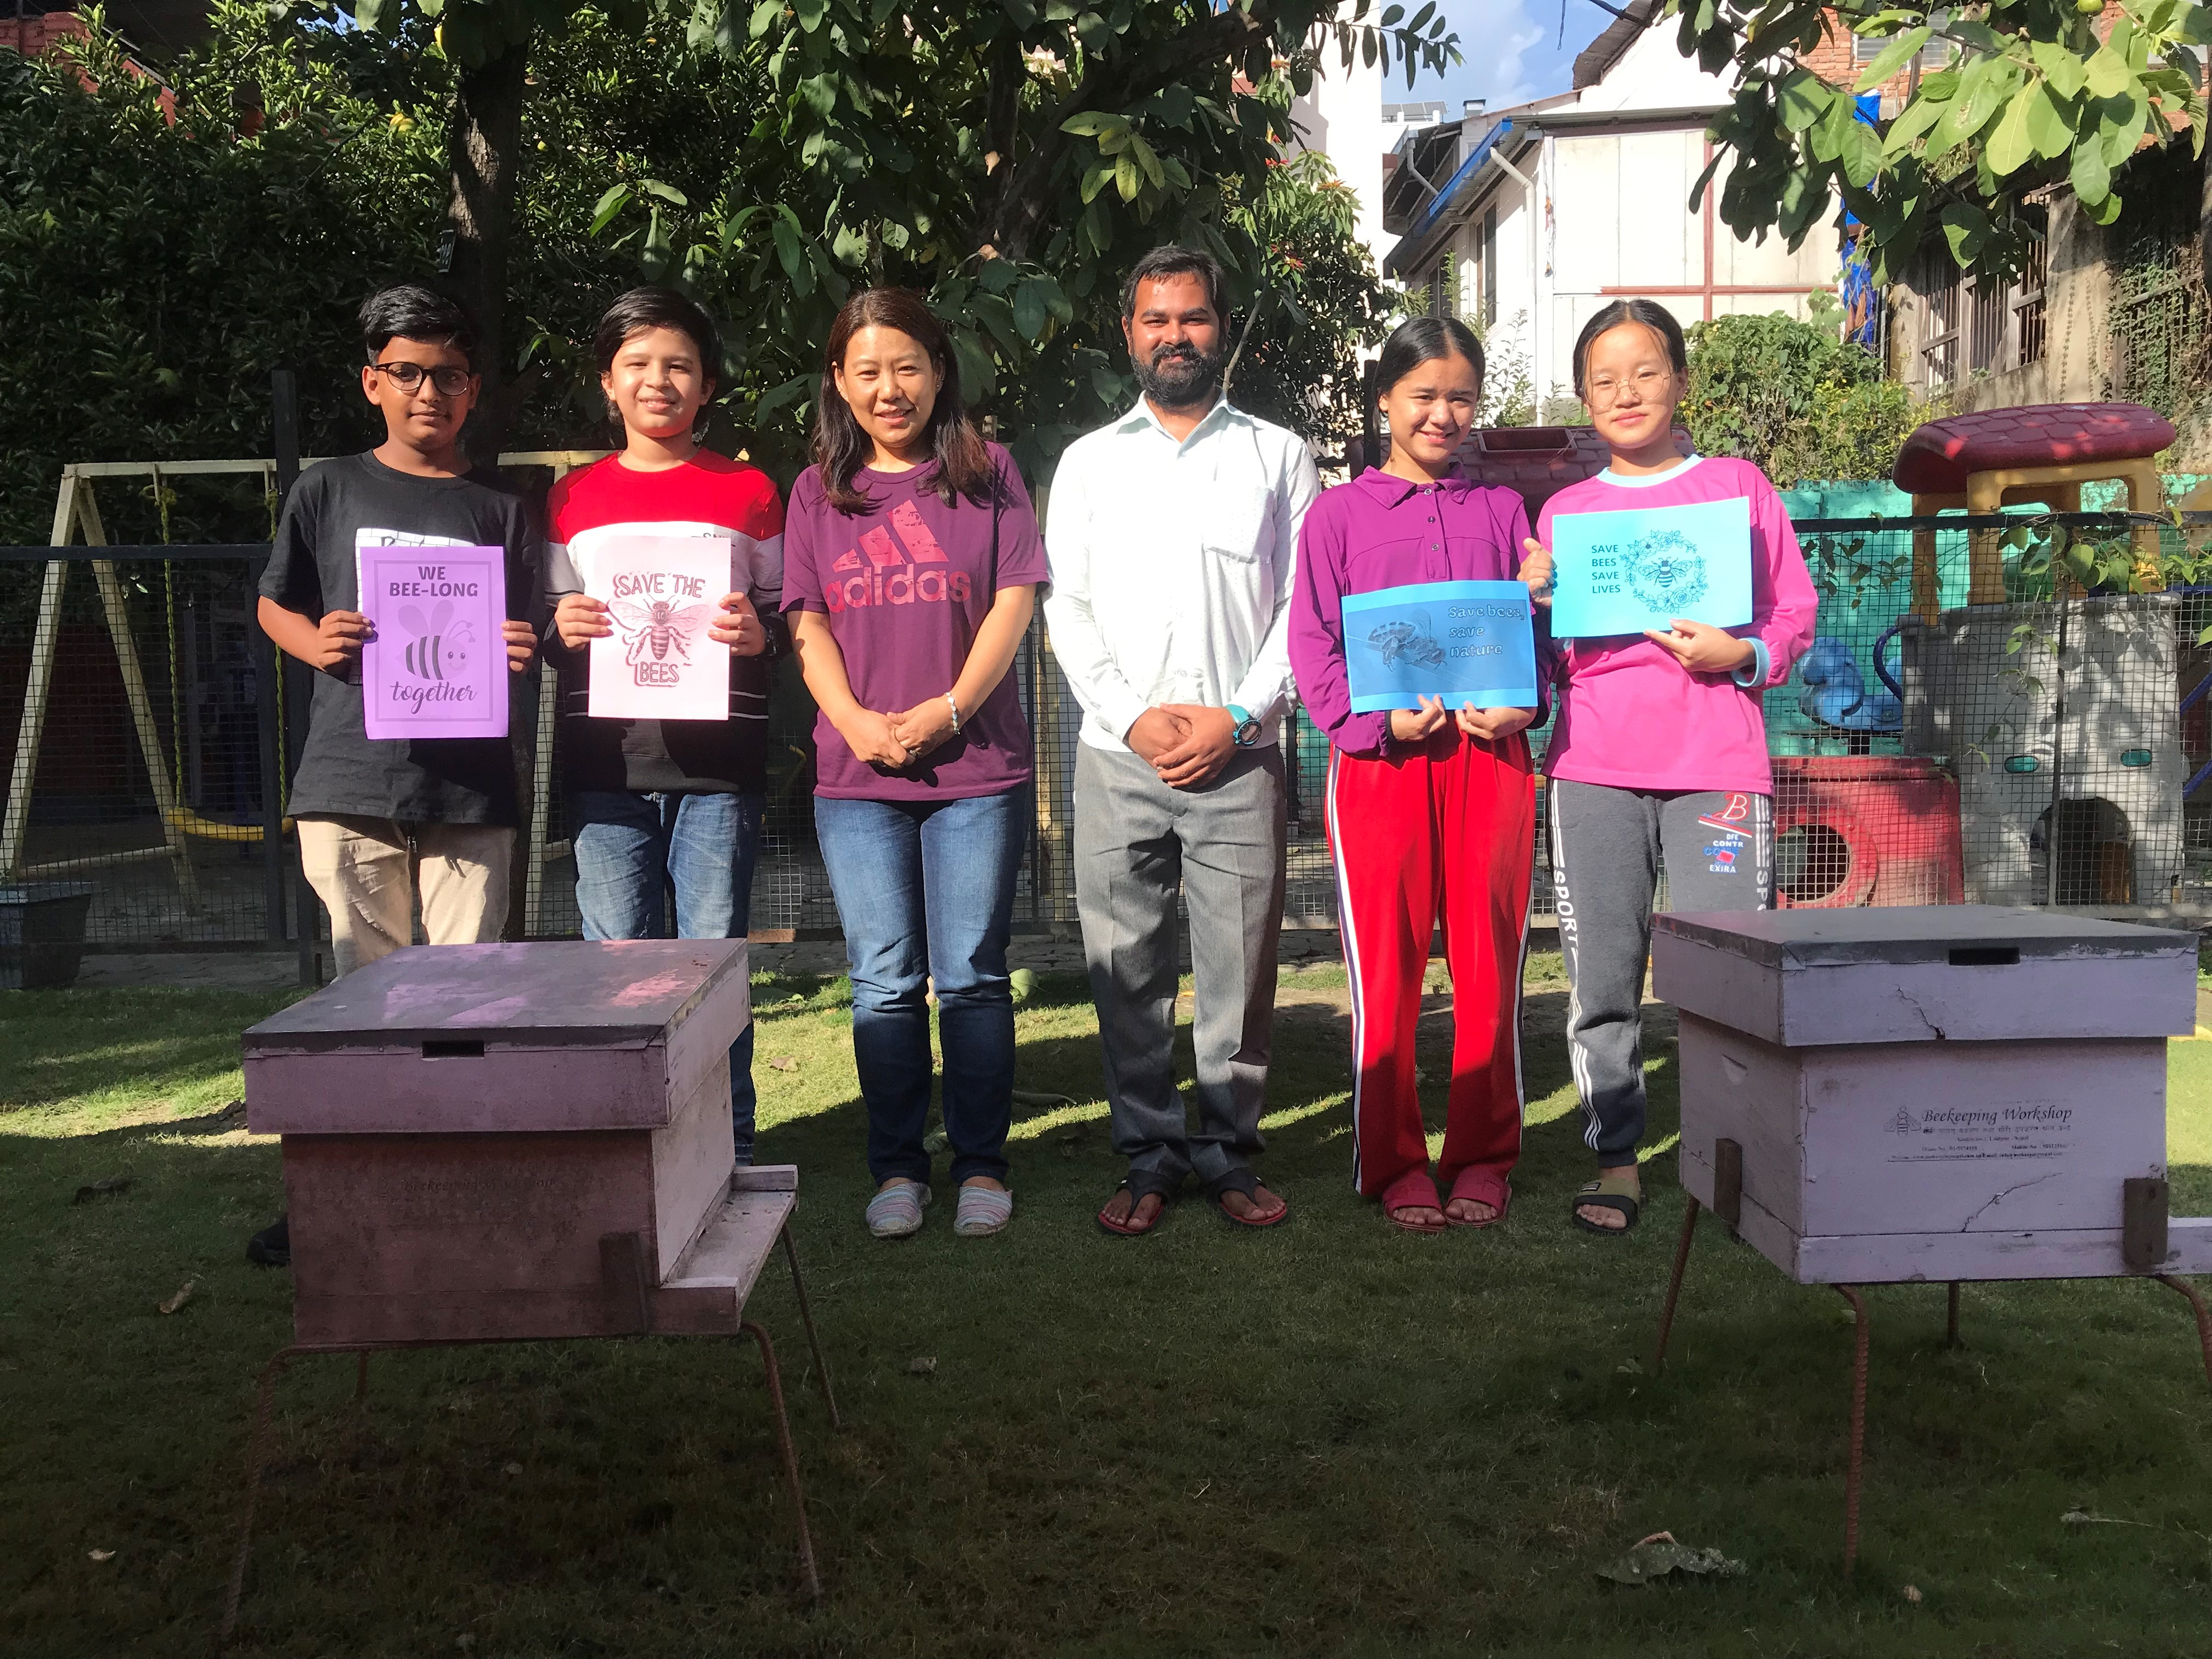 using bees to teach about climate change